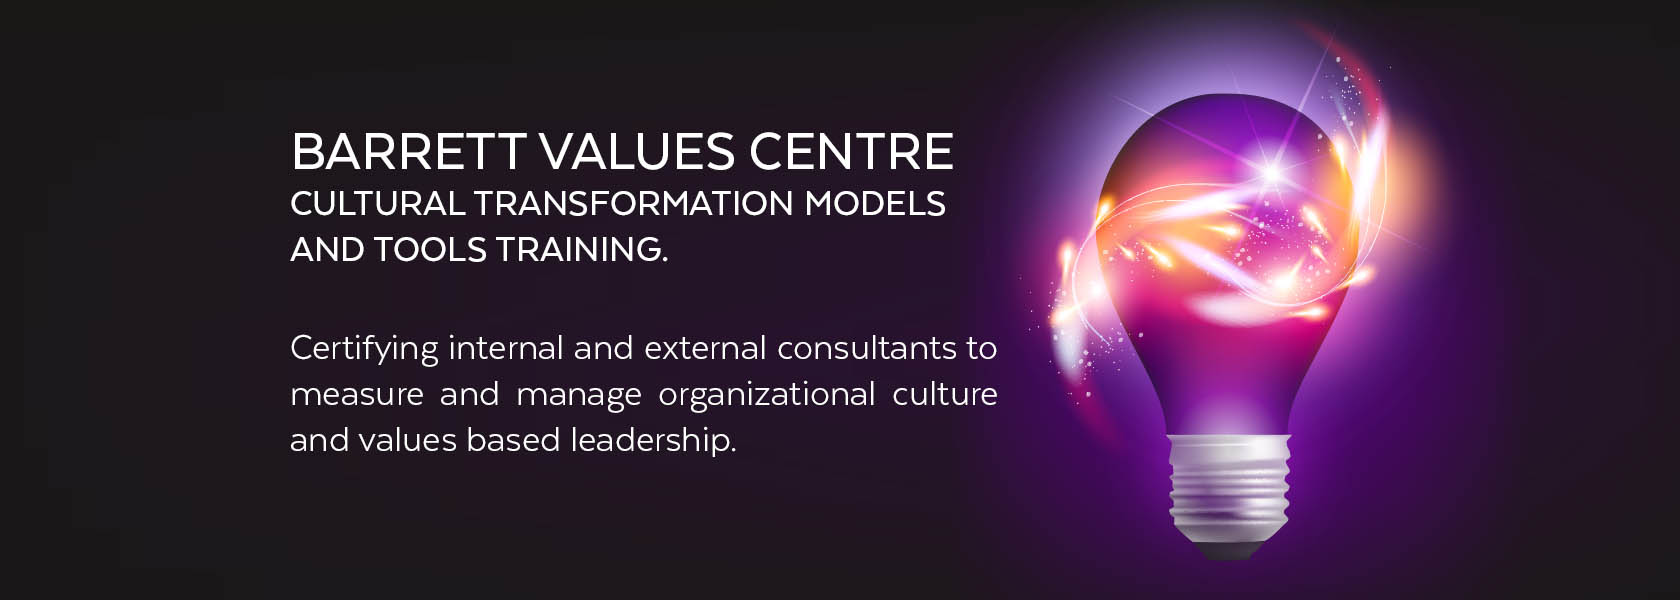 Barrett Values Centre CTT Tools and Training